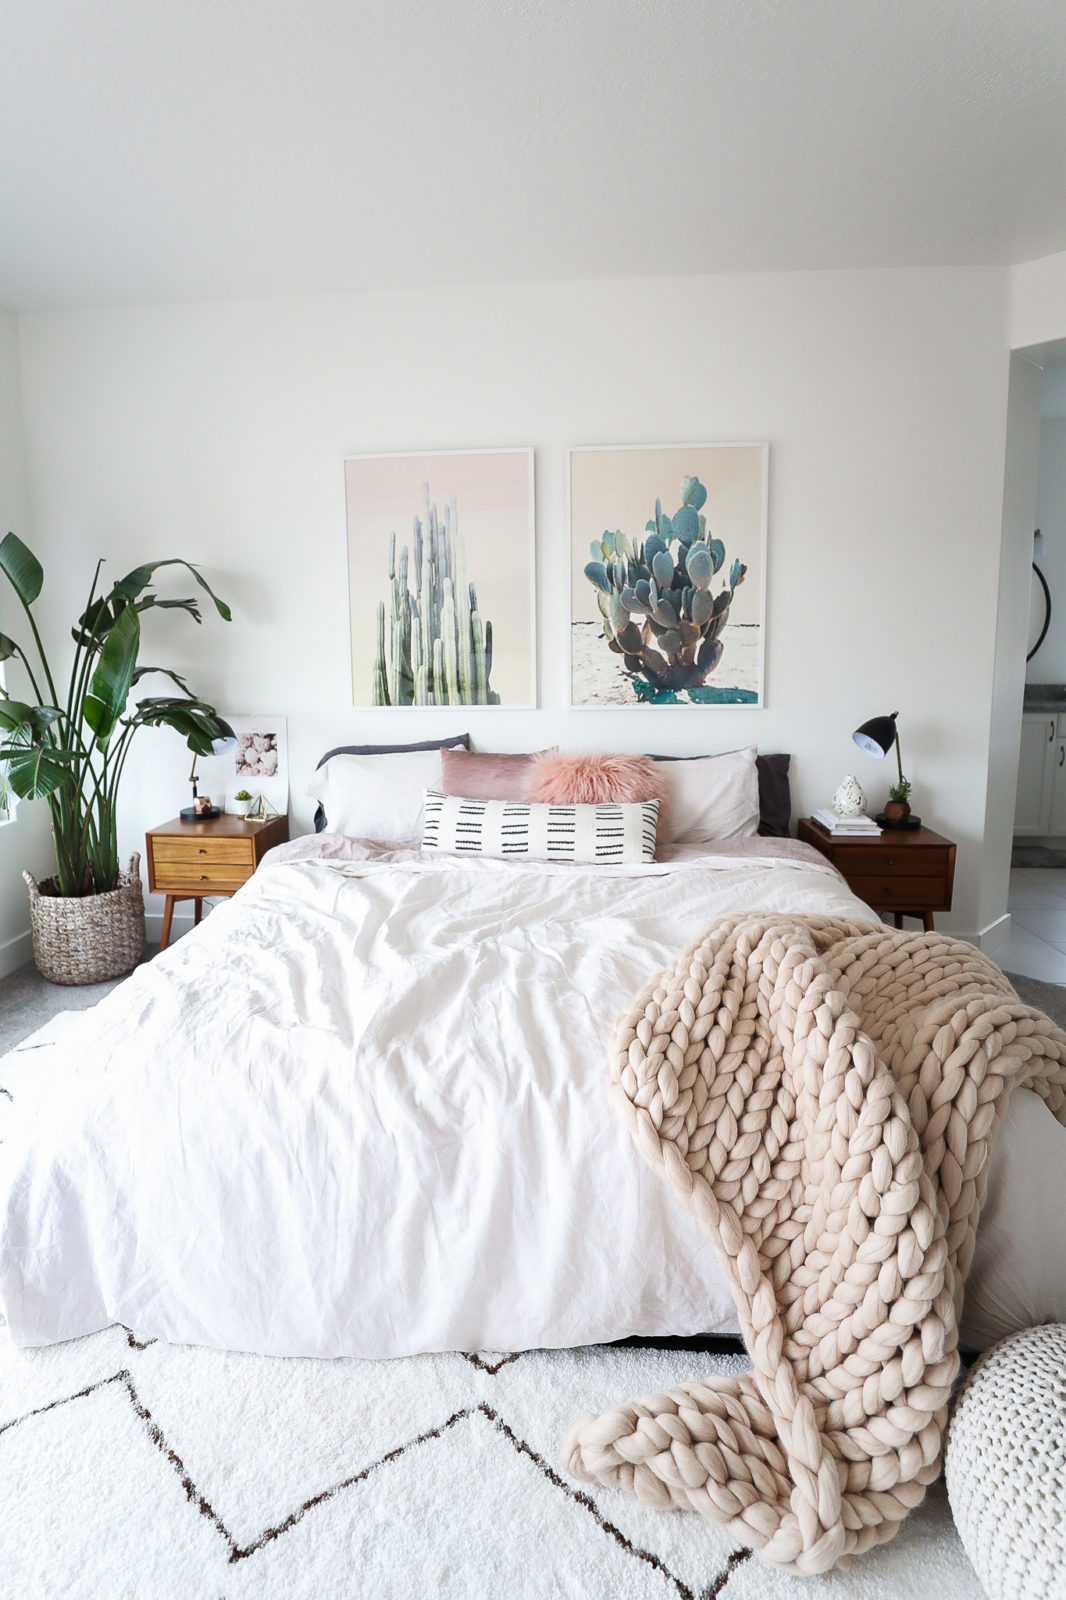 Best Room Tour 2017 – Aspyn Ovard This Month